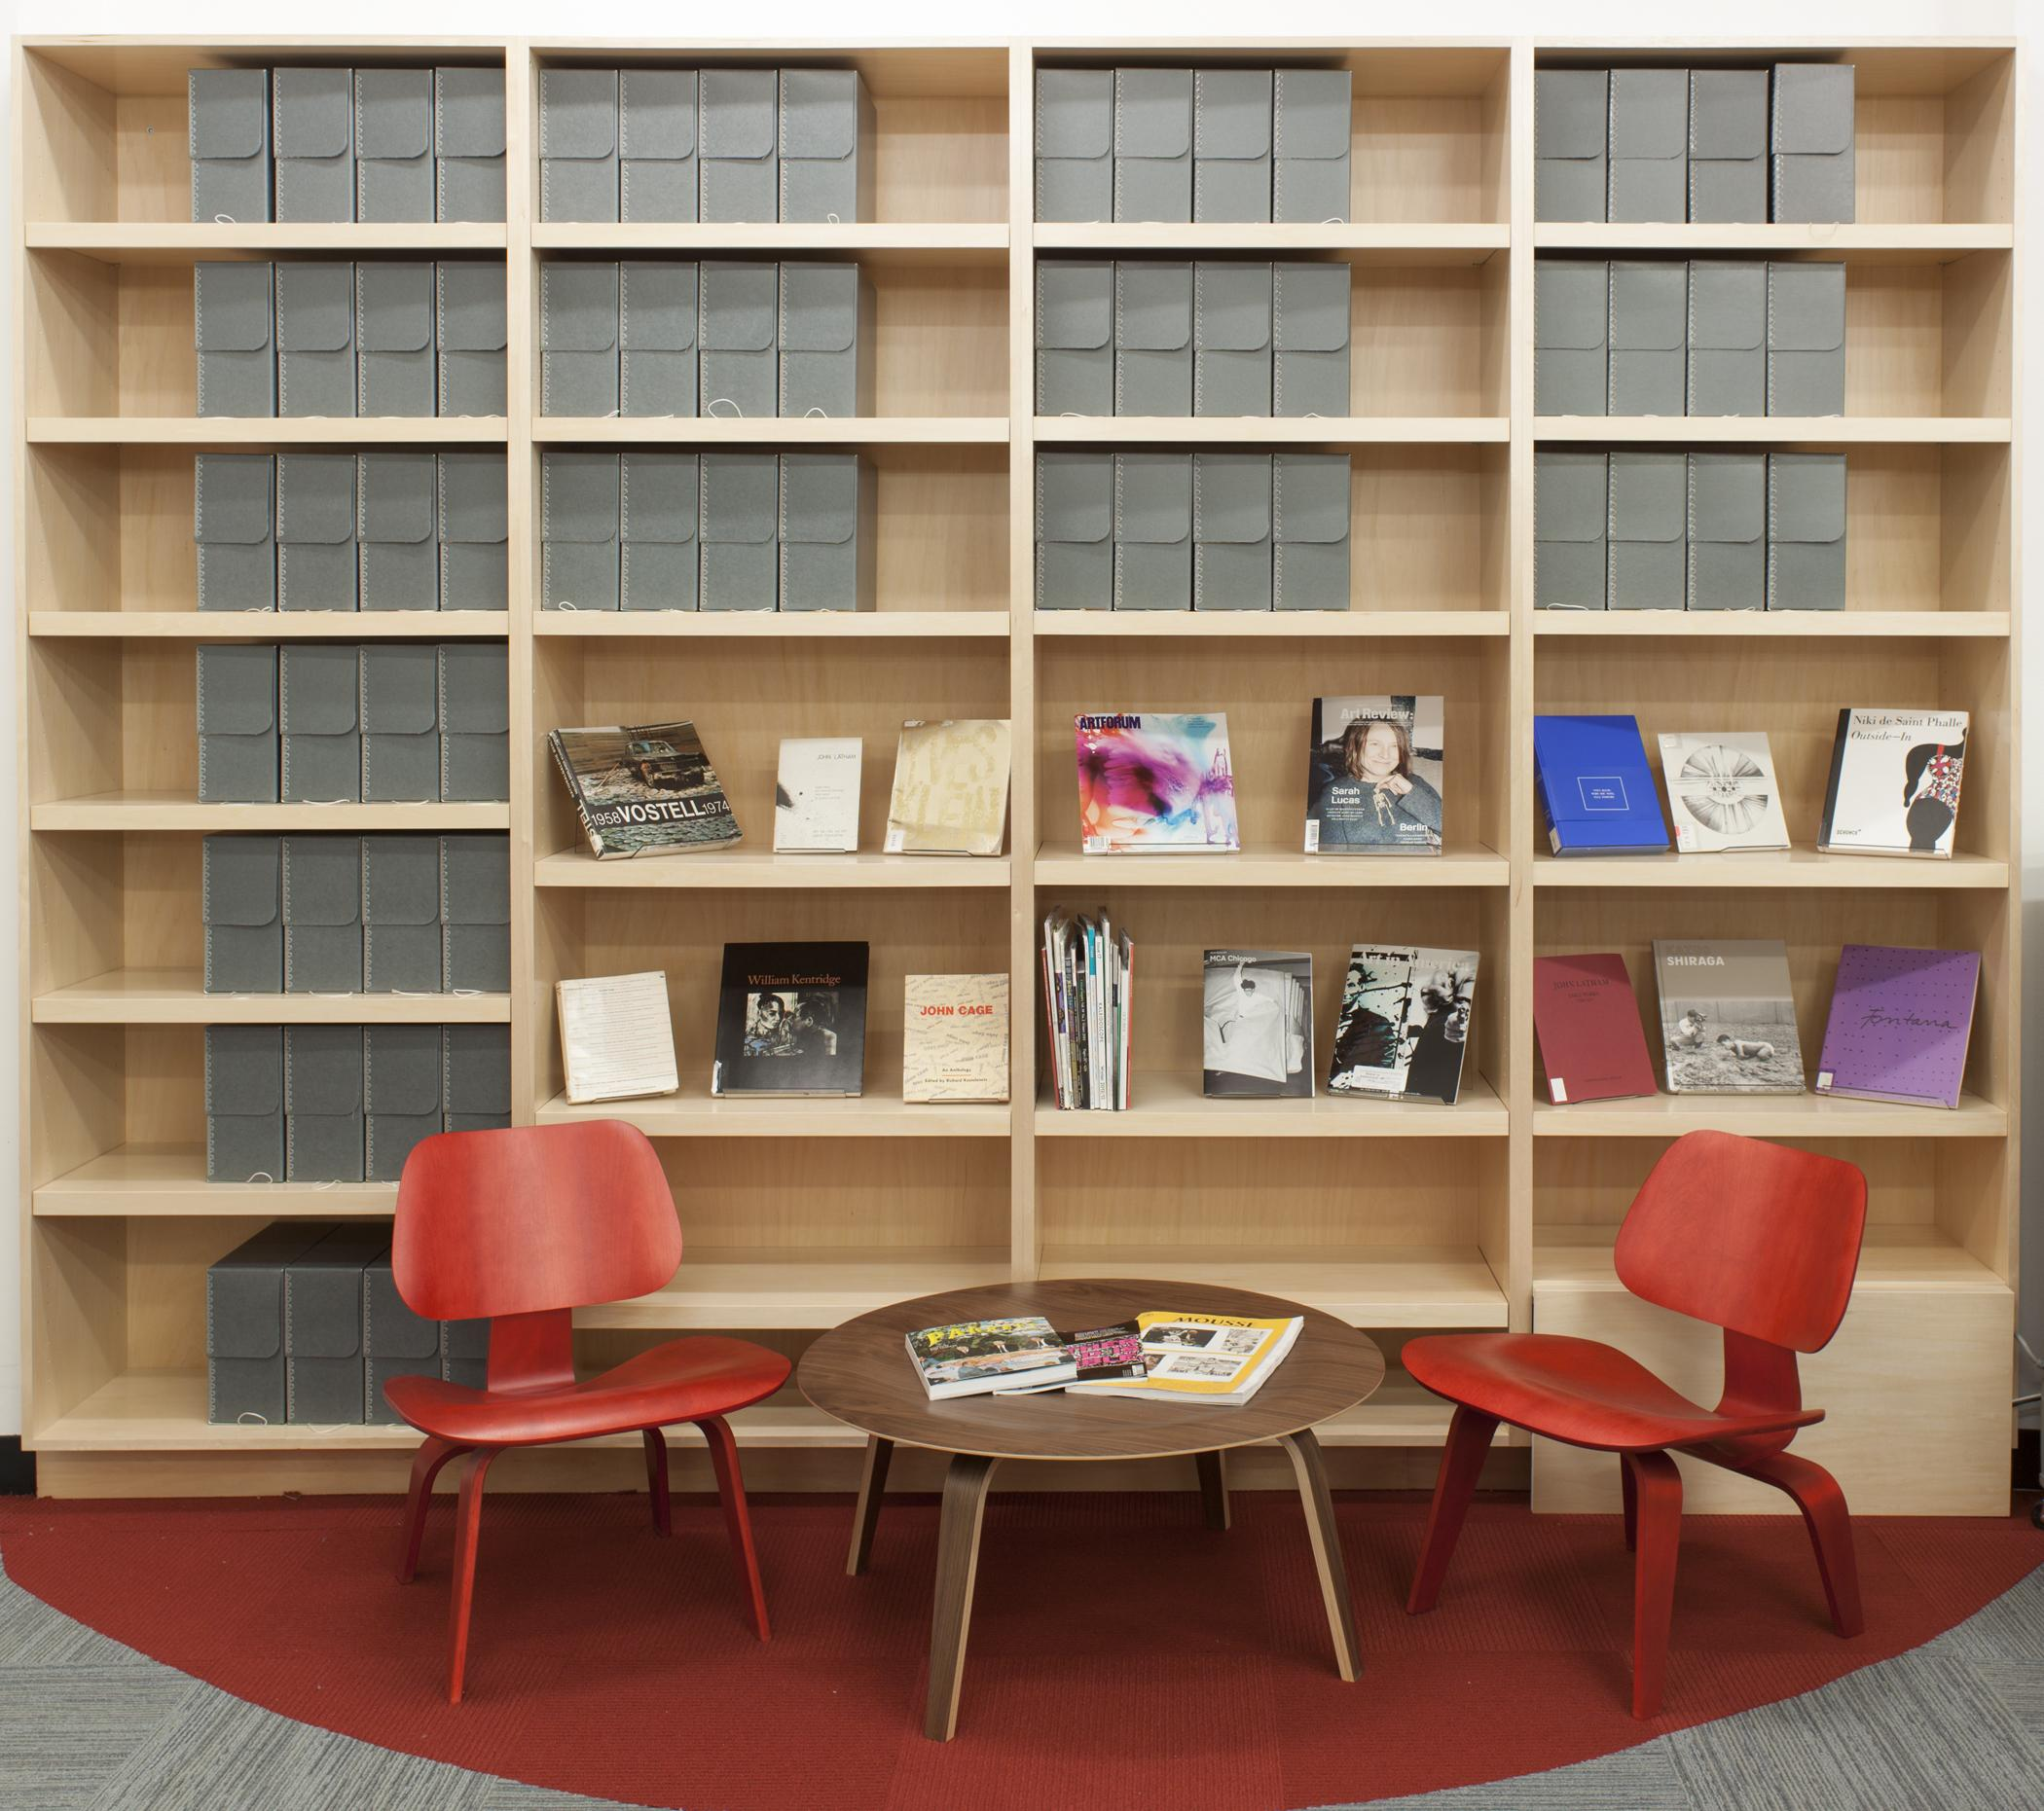 A side table and two chairs in front of gridded bookshelf with books and archival boxes on display